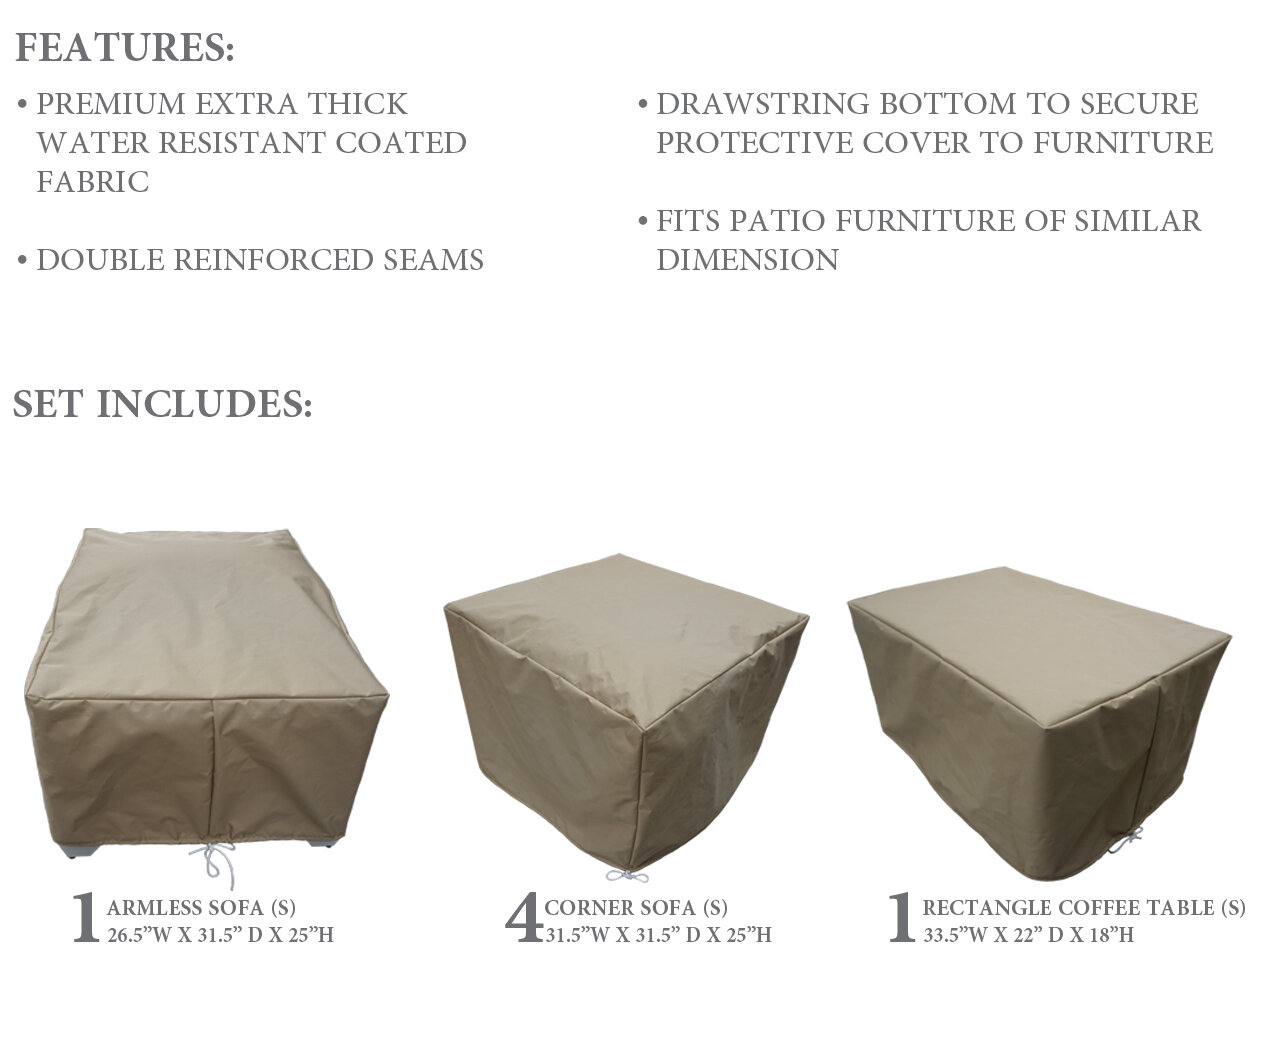 Fernando Protective 6 Piece Water Resistant Patio Furniture Cover Set in size 1264 X 1056